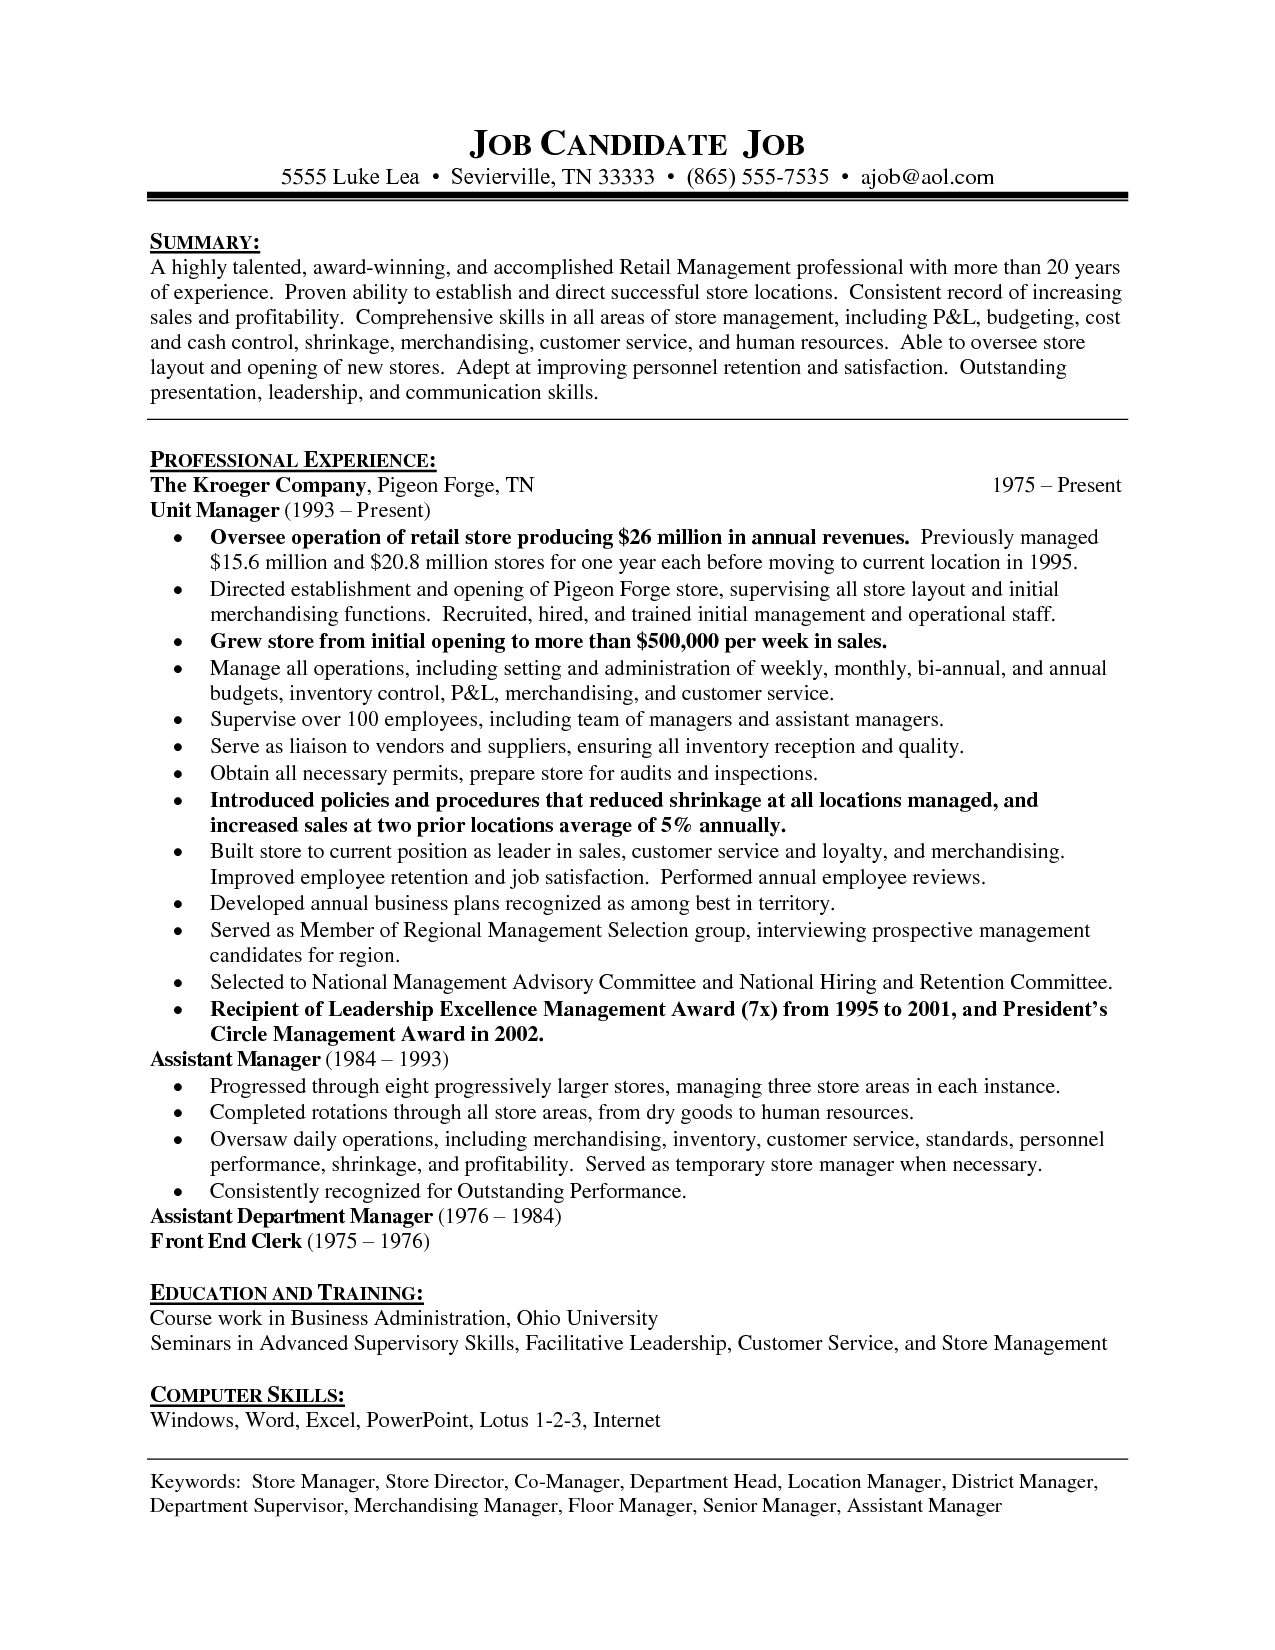 Senior Manager Resume Template Retail Department Store Manager Resume  Vision Specialist  Good .